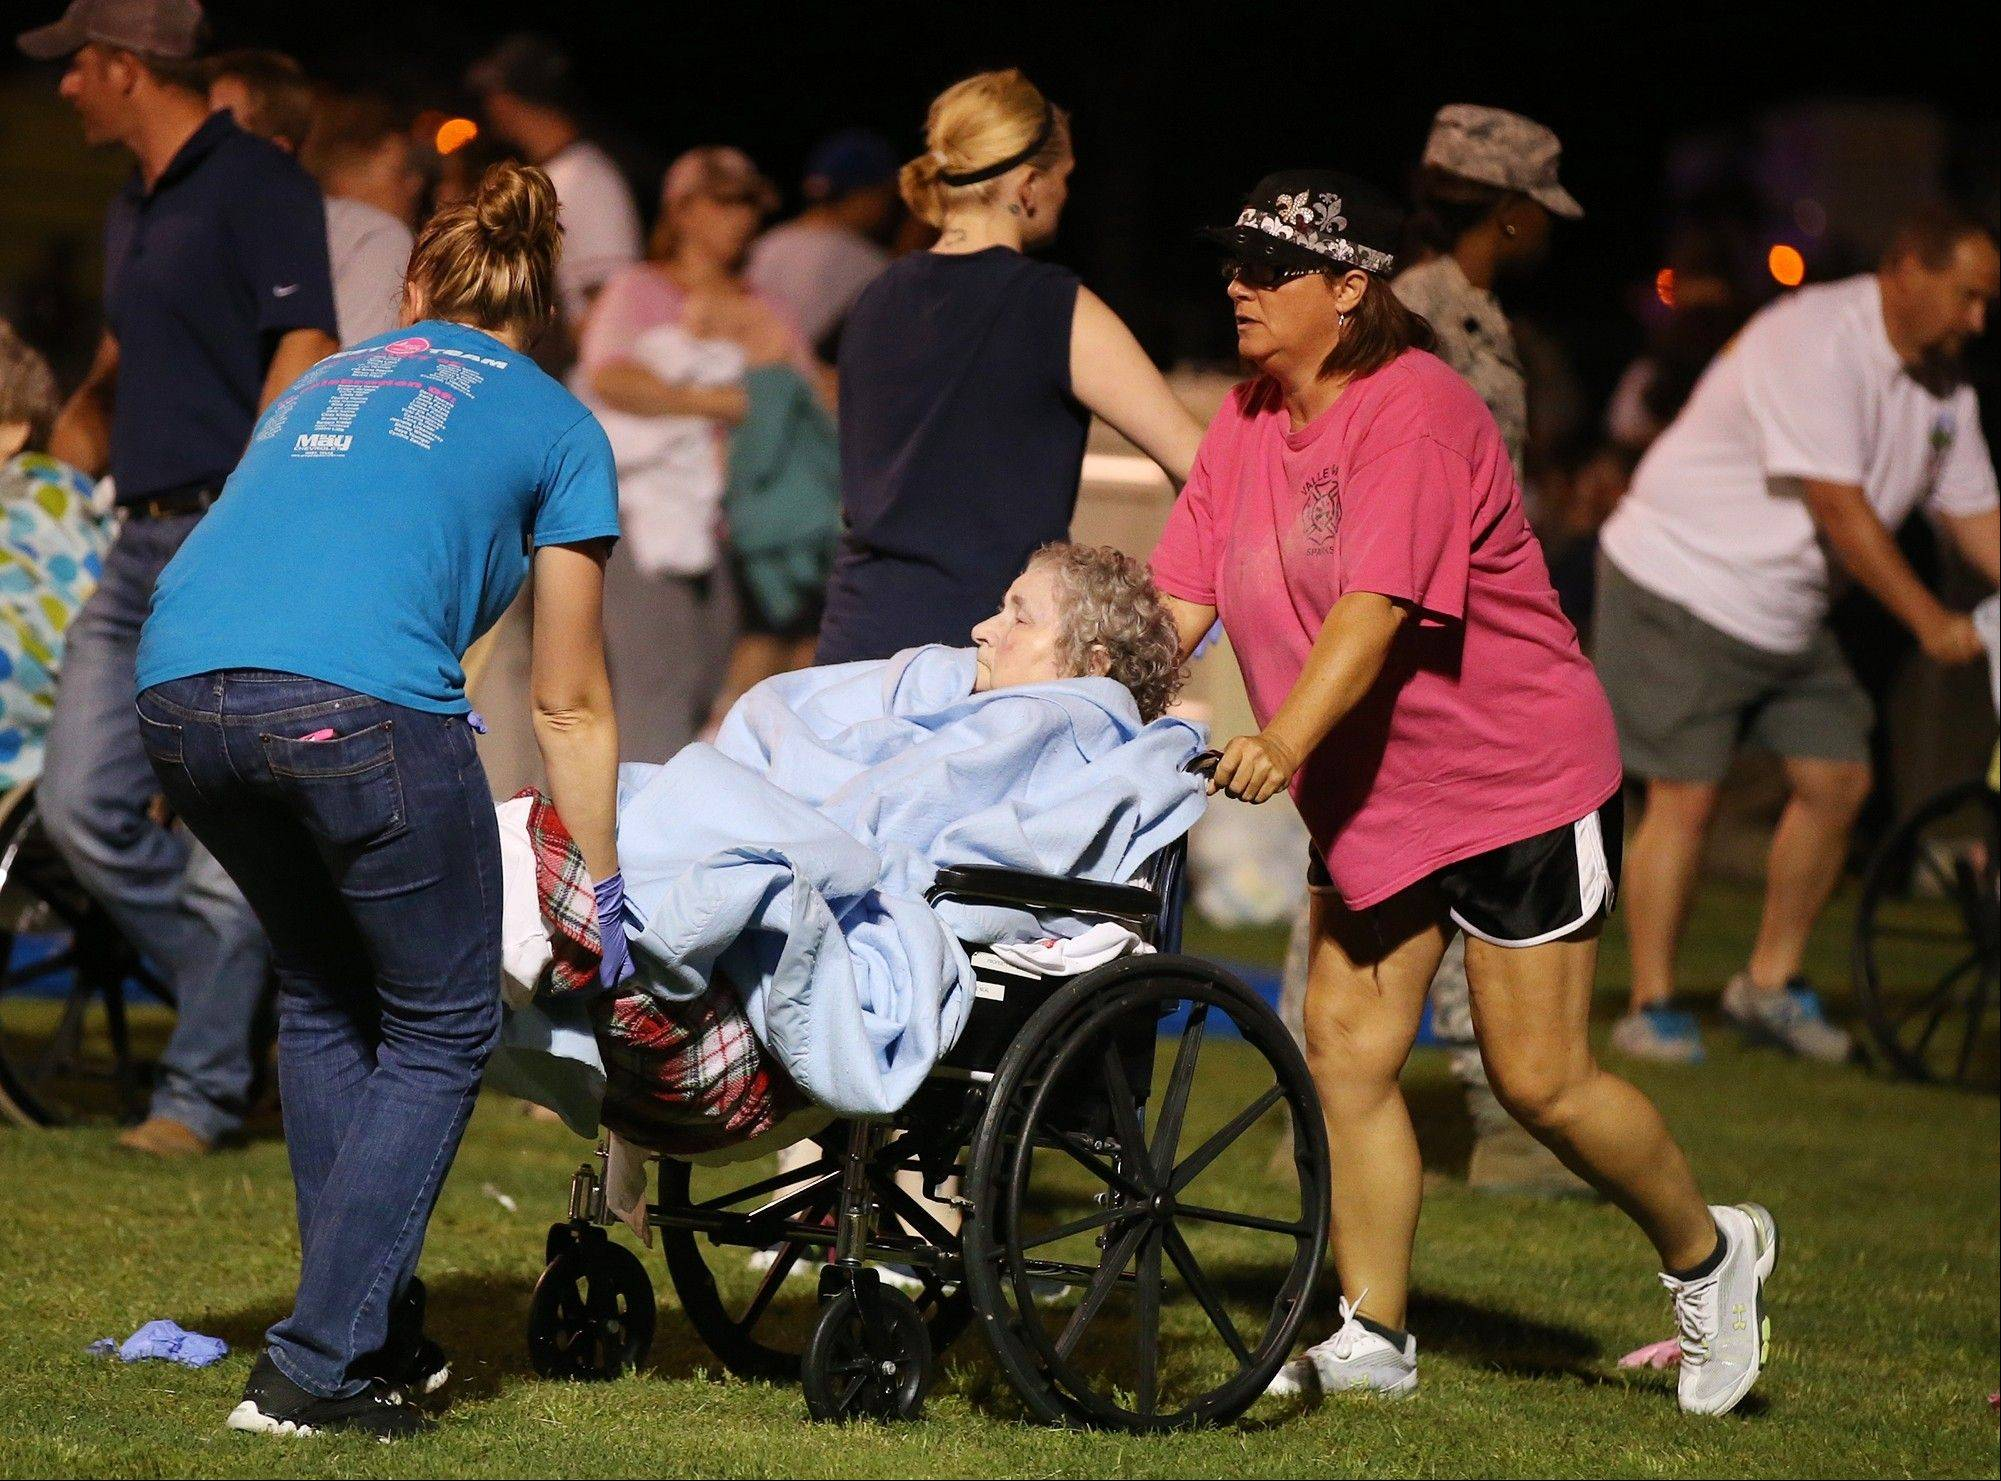 An elderly person is assisted at a staging area at a local school stadium following an explosion at a fertilizer plant Wednesday in West, Texas. An explosion at a fertilizer plant near Waco caused numerous injuries and sent flames shooting high into the night sky on Wednesday.